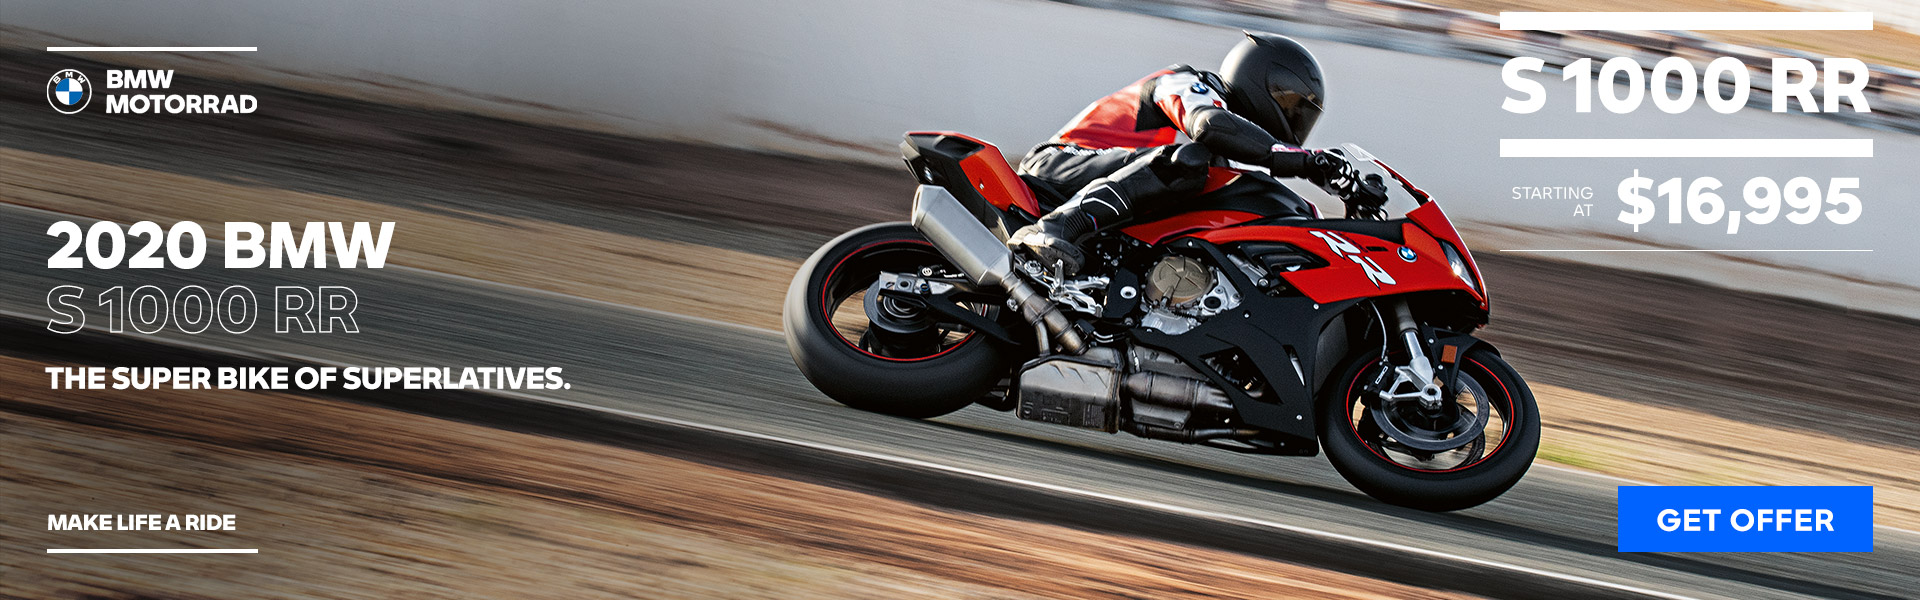 2020 BMW S 1000 RR - STARTING AT $16,995